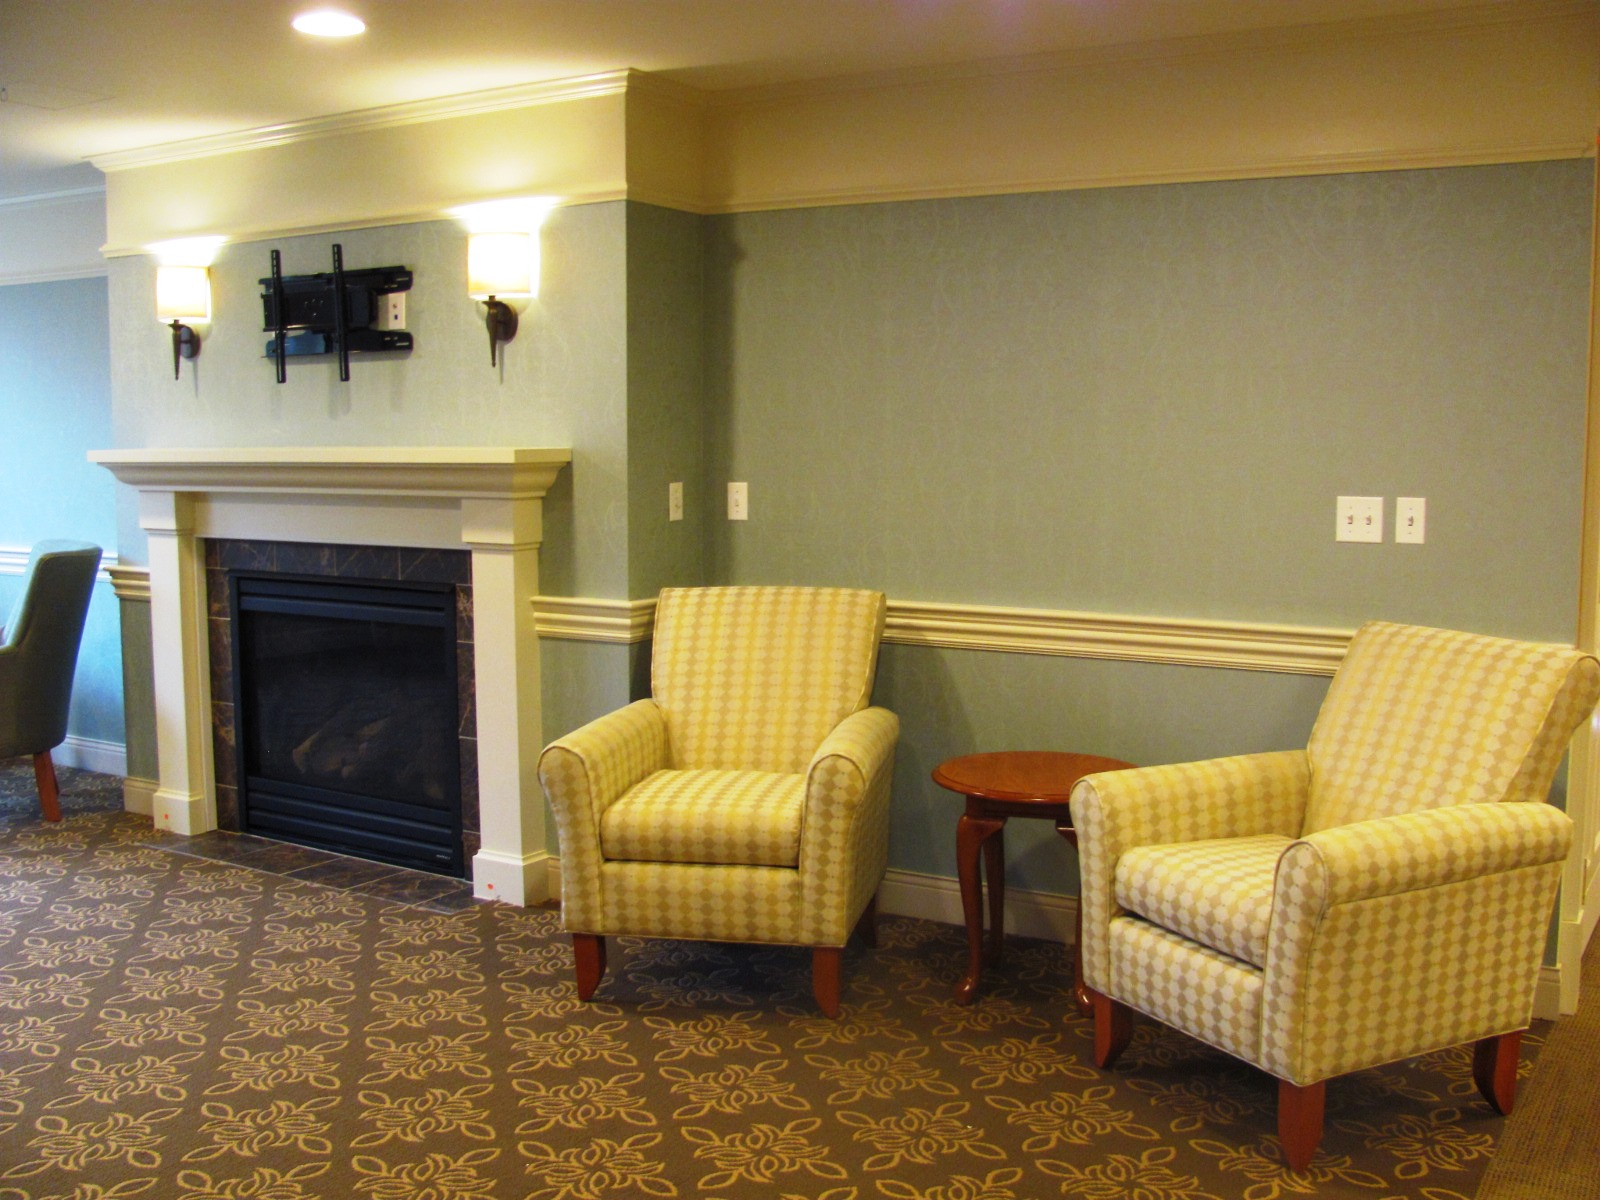 April_15_Comfortable_seating_in_living_room_area.jpg